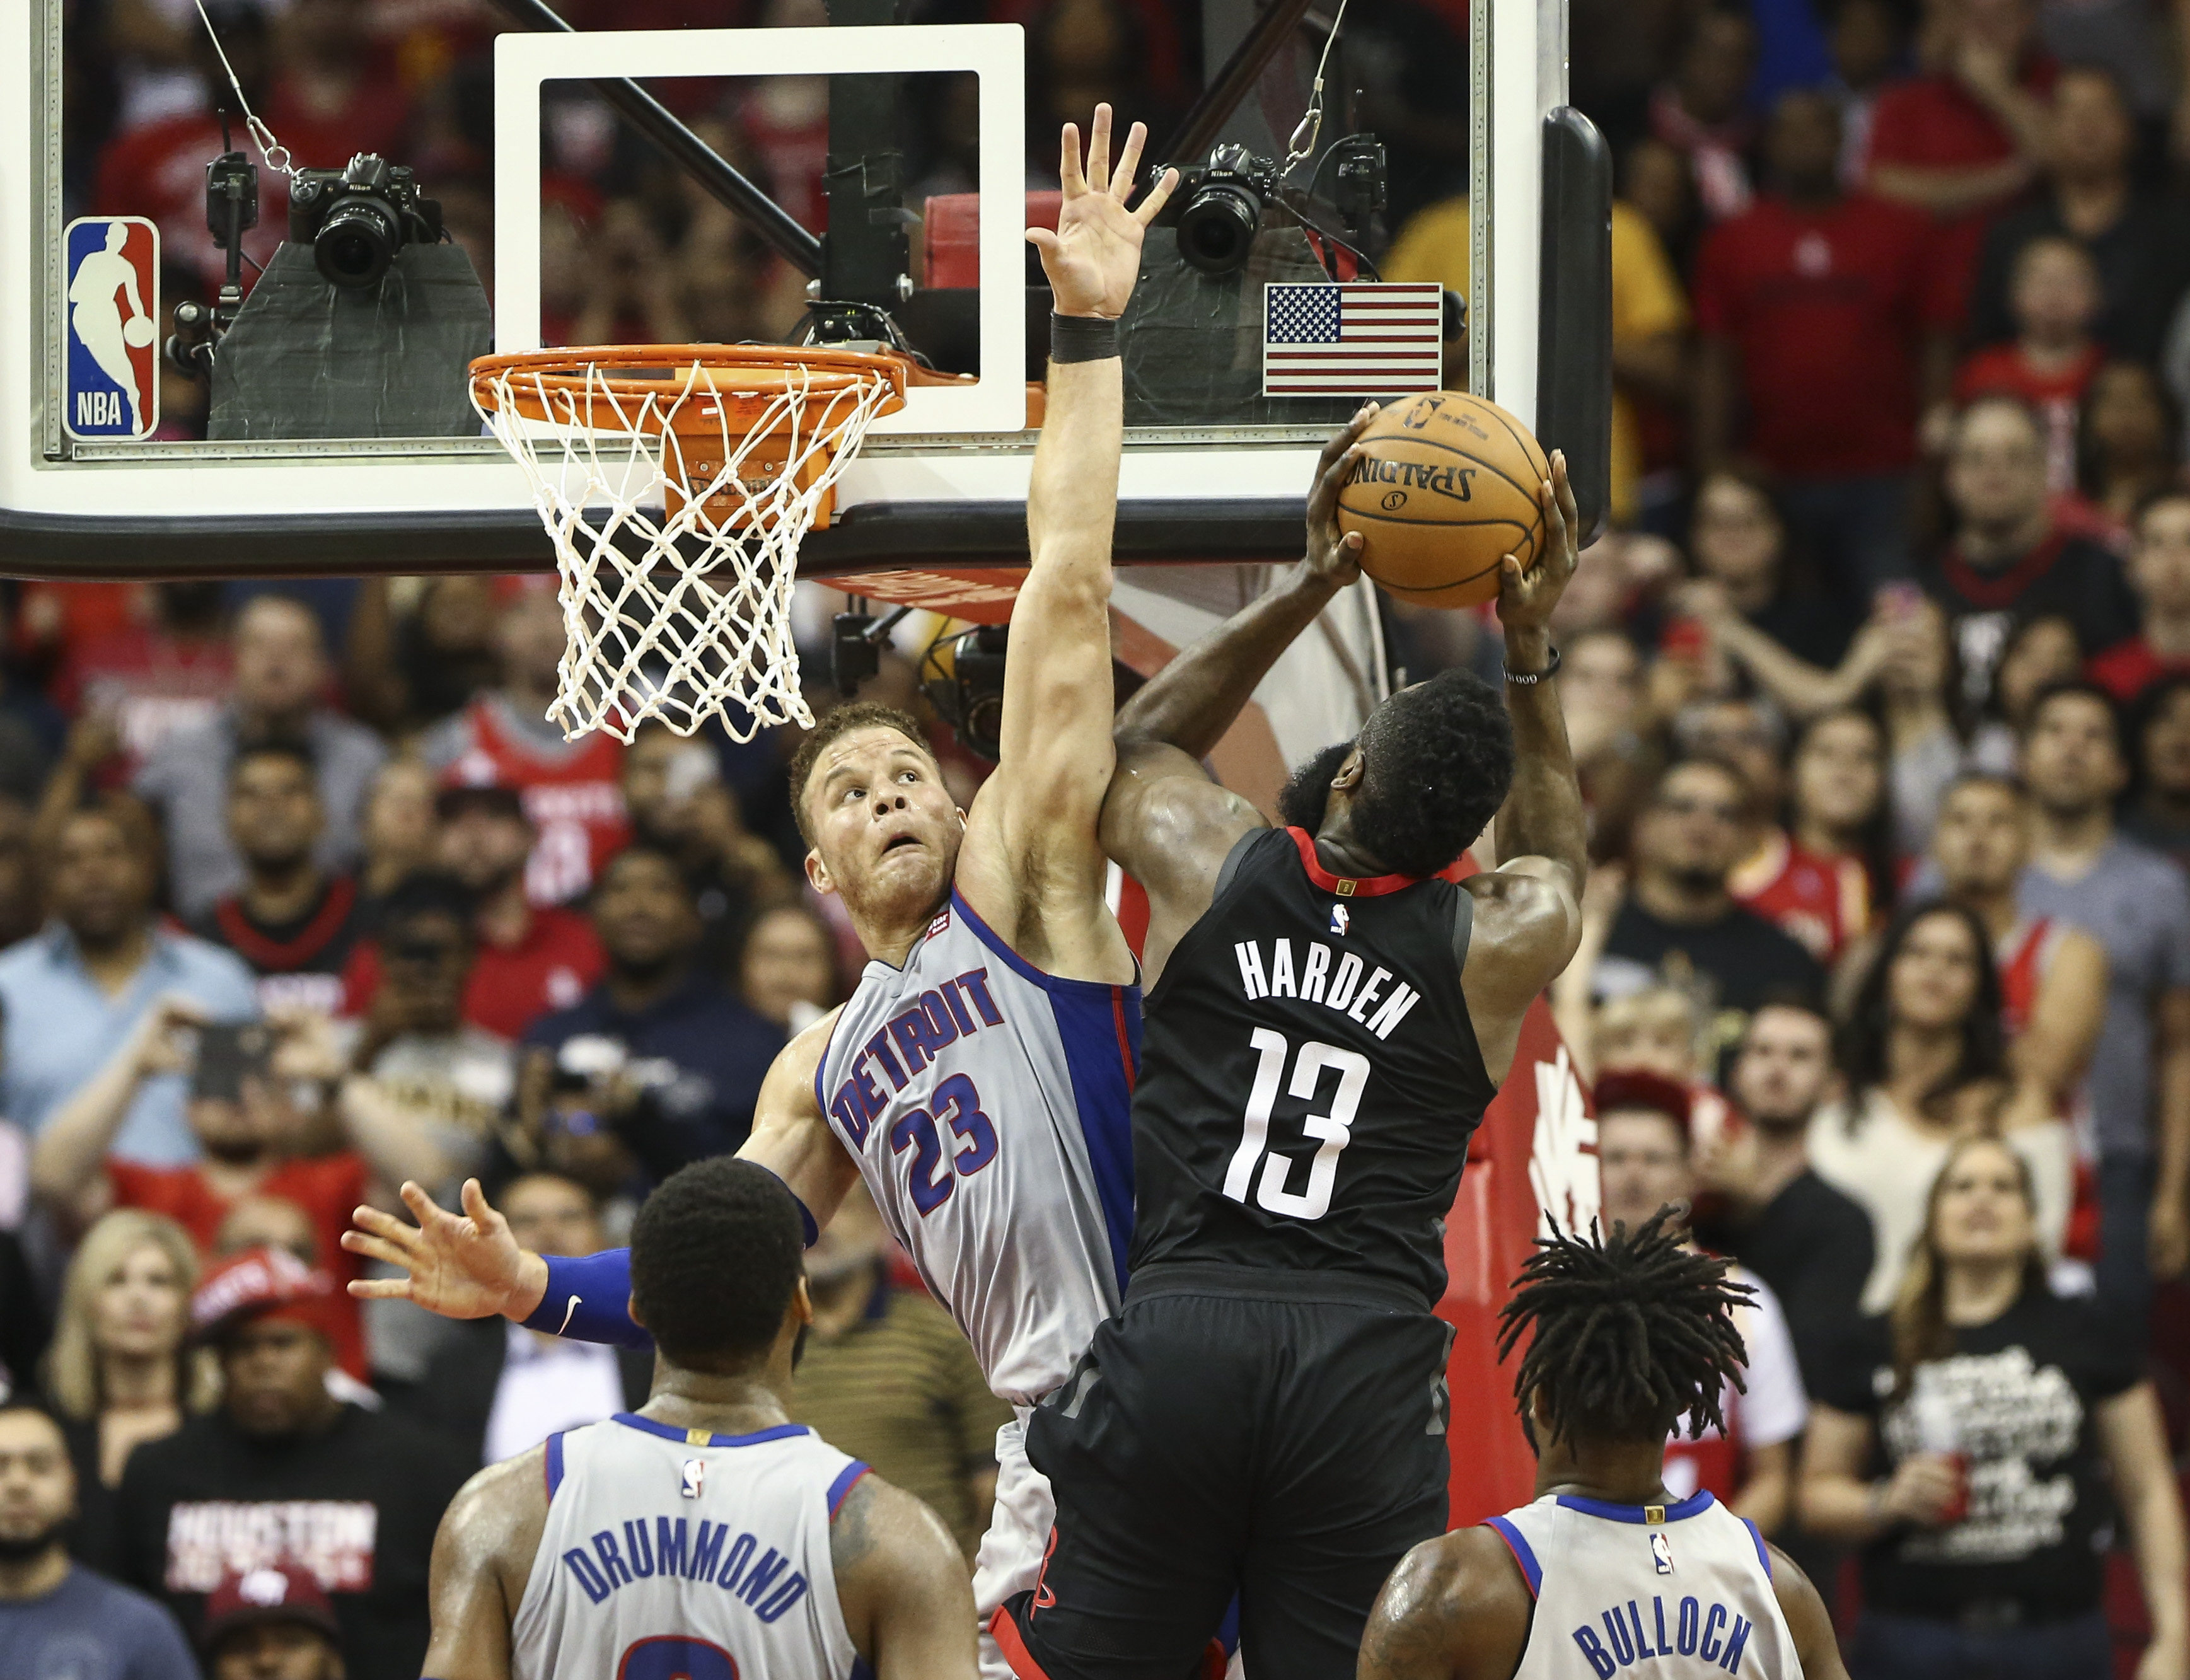 Basket - NBA - Le leader Houston dans la difficulté, Charlotte humilie Memphis